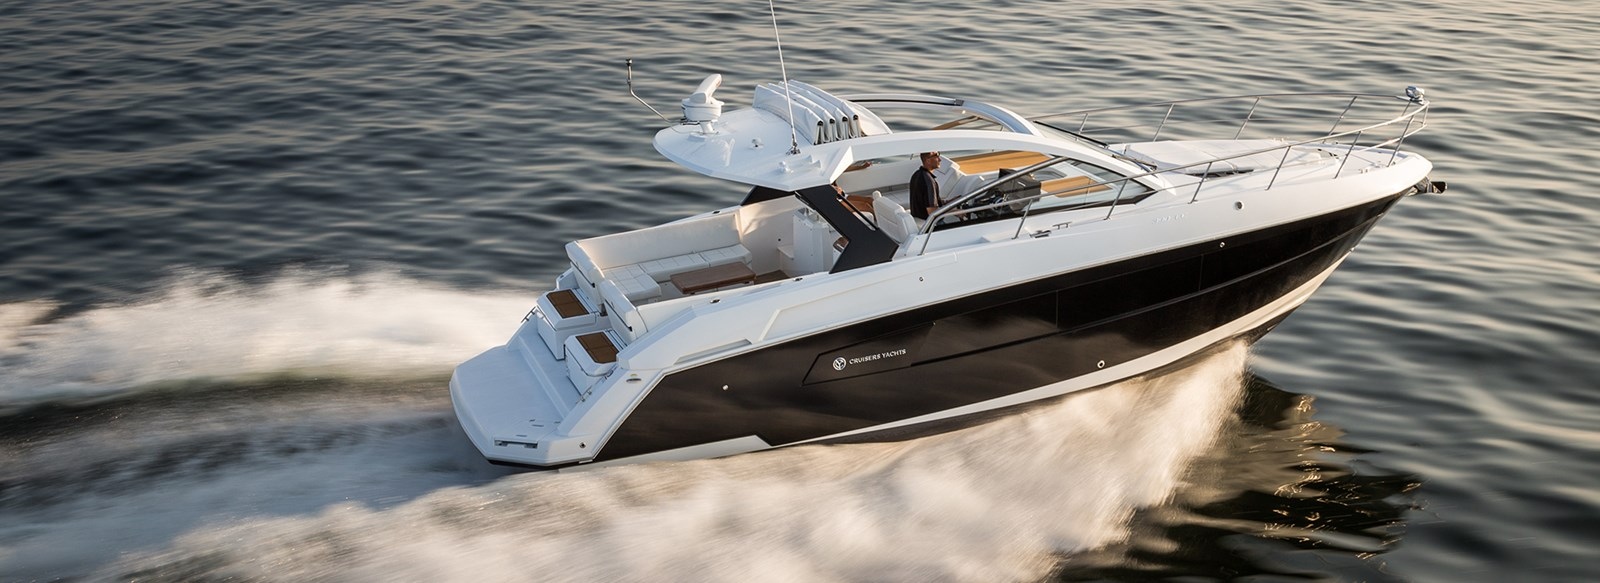 New Cruisers 390 Express Coupe Yachts For Sale